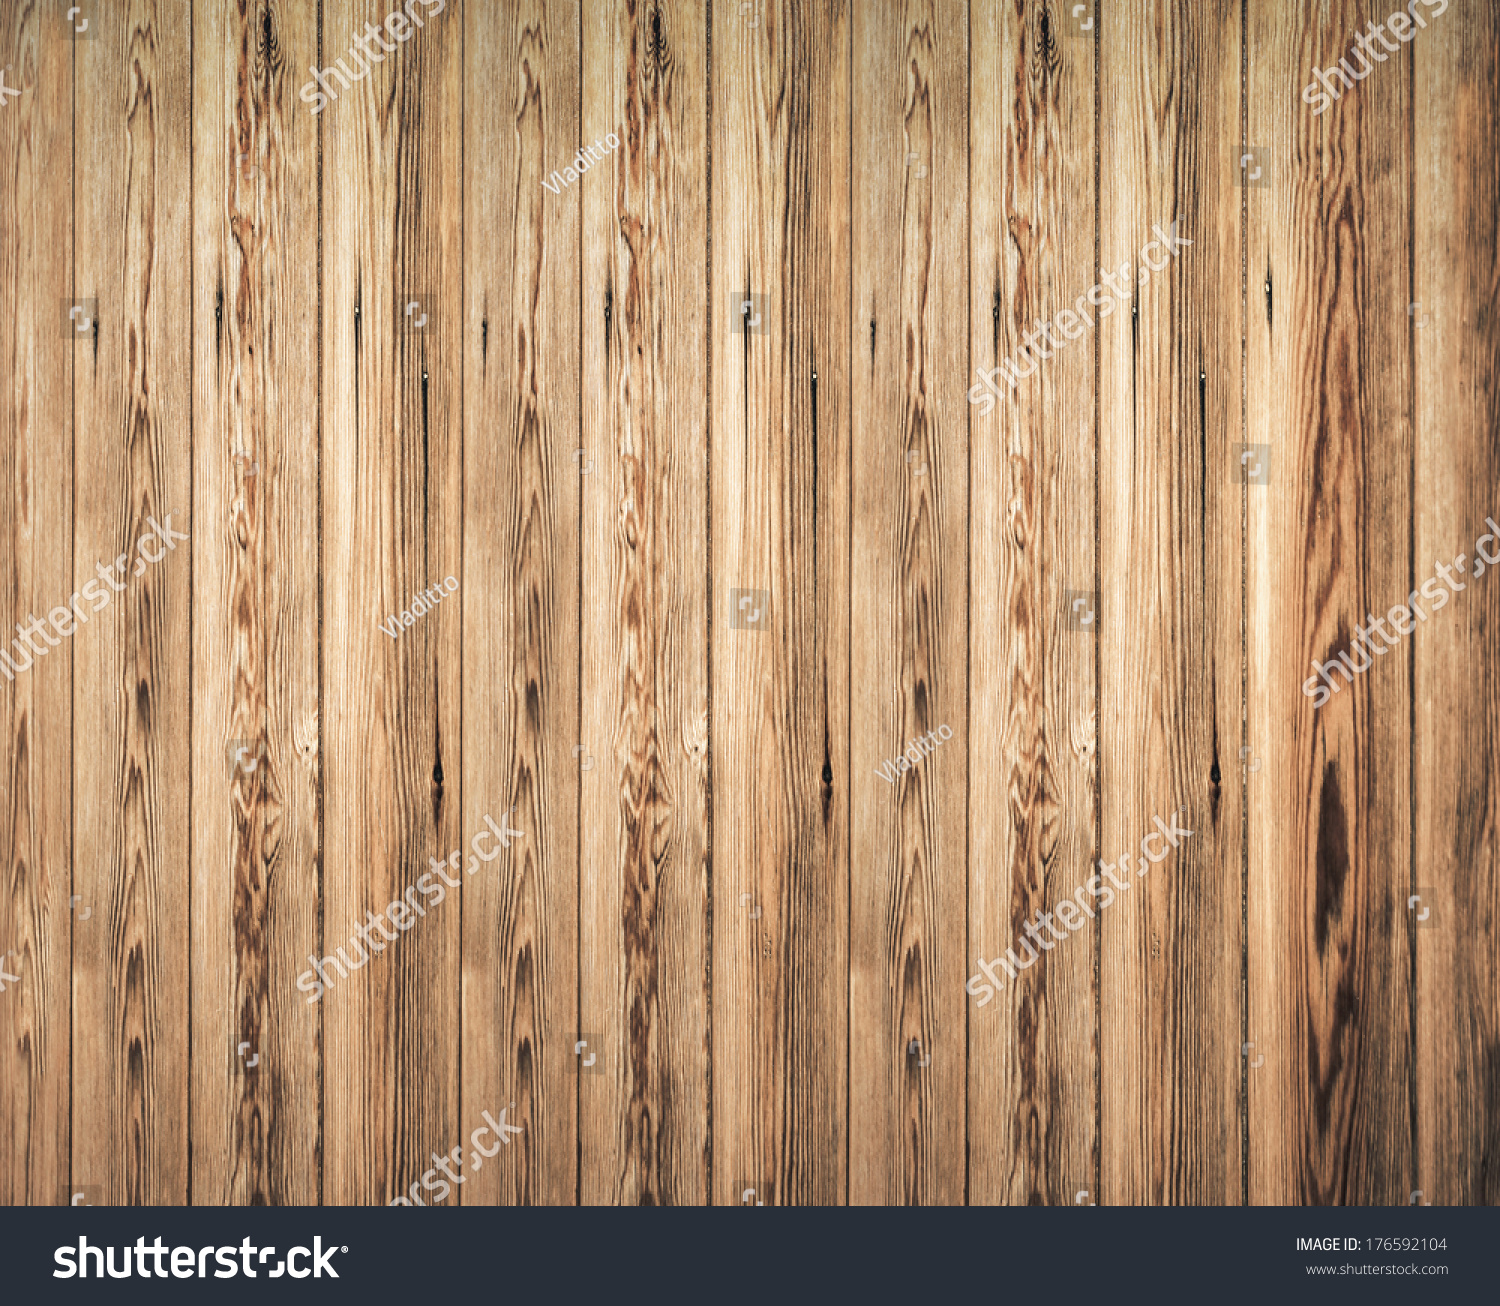 Grungy cracked wood photo